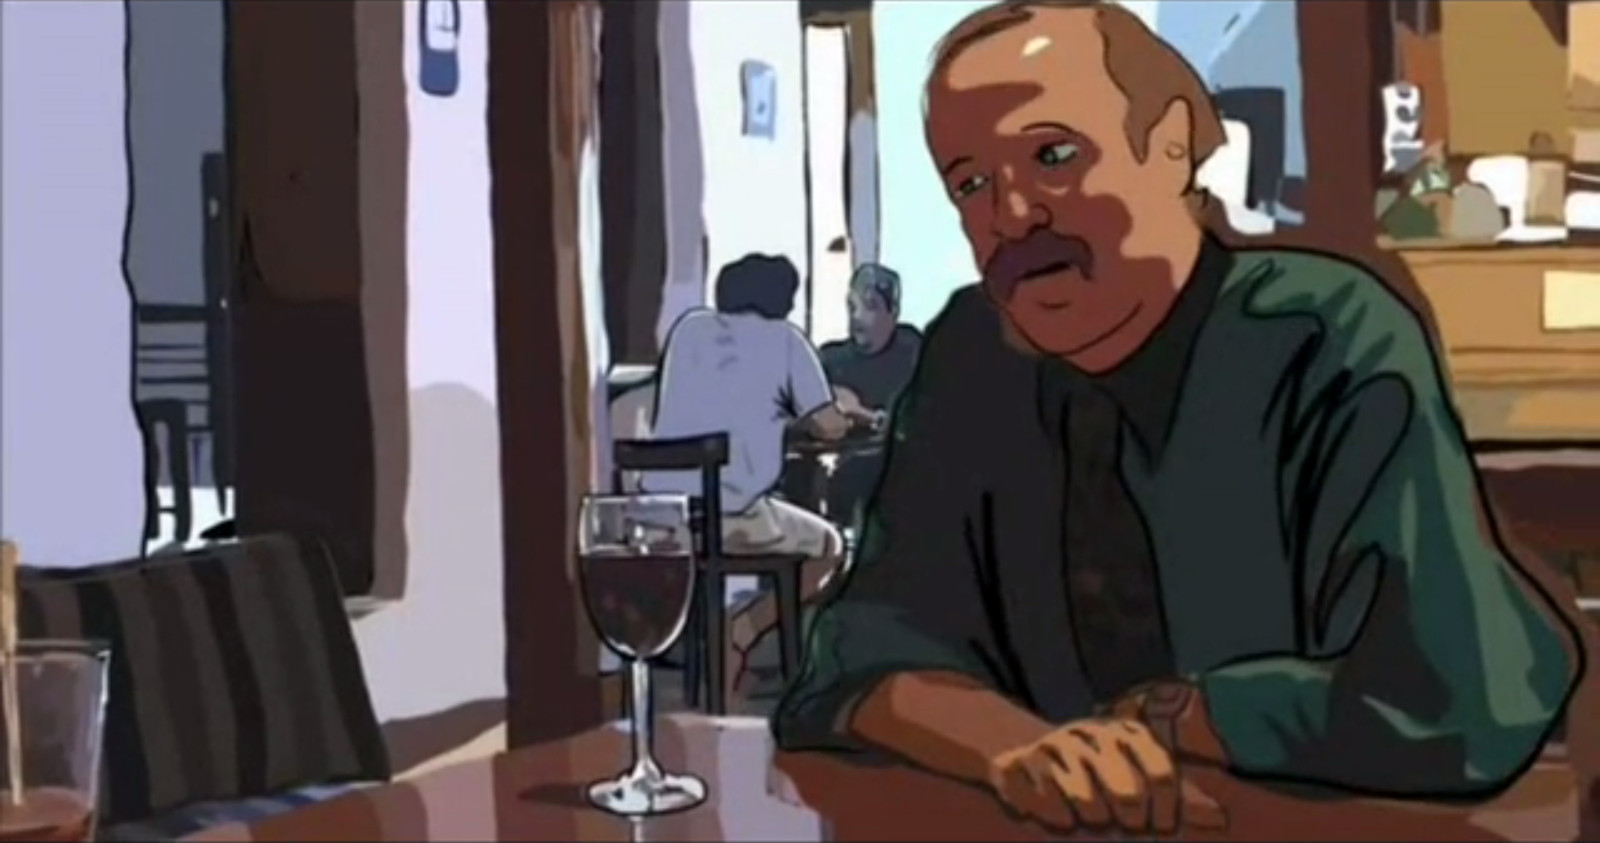 Robert Solomon in Waking Life